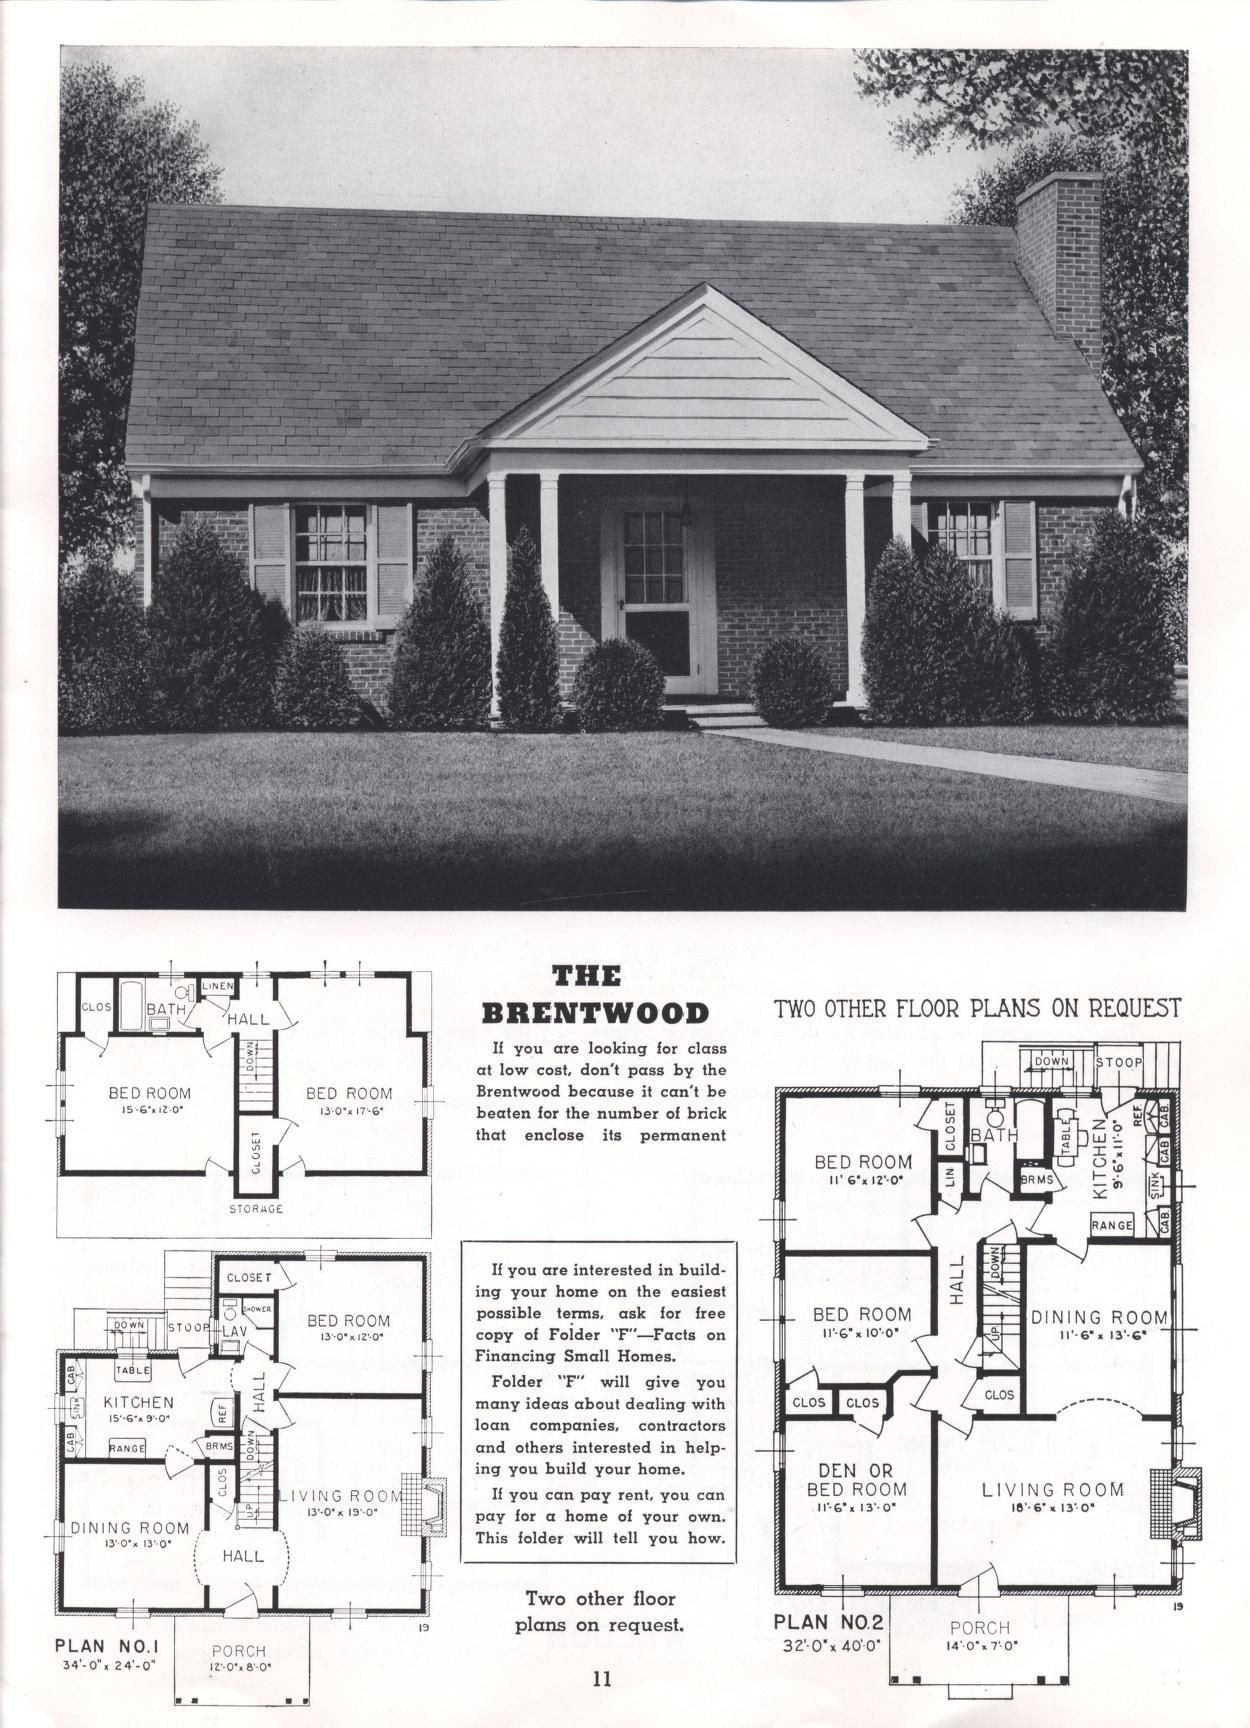 Homes Of Today And Tomorrow B 48 Standard Homes Co Free Download Borrow And Streaming Internet Archive Dream House Plans Classic House How To Plan